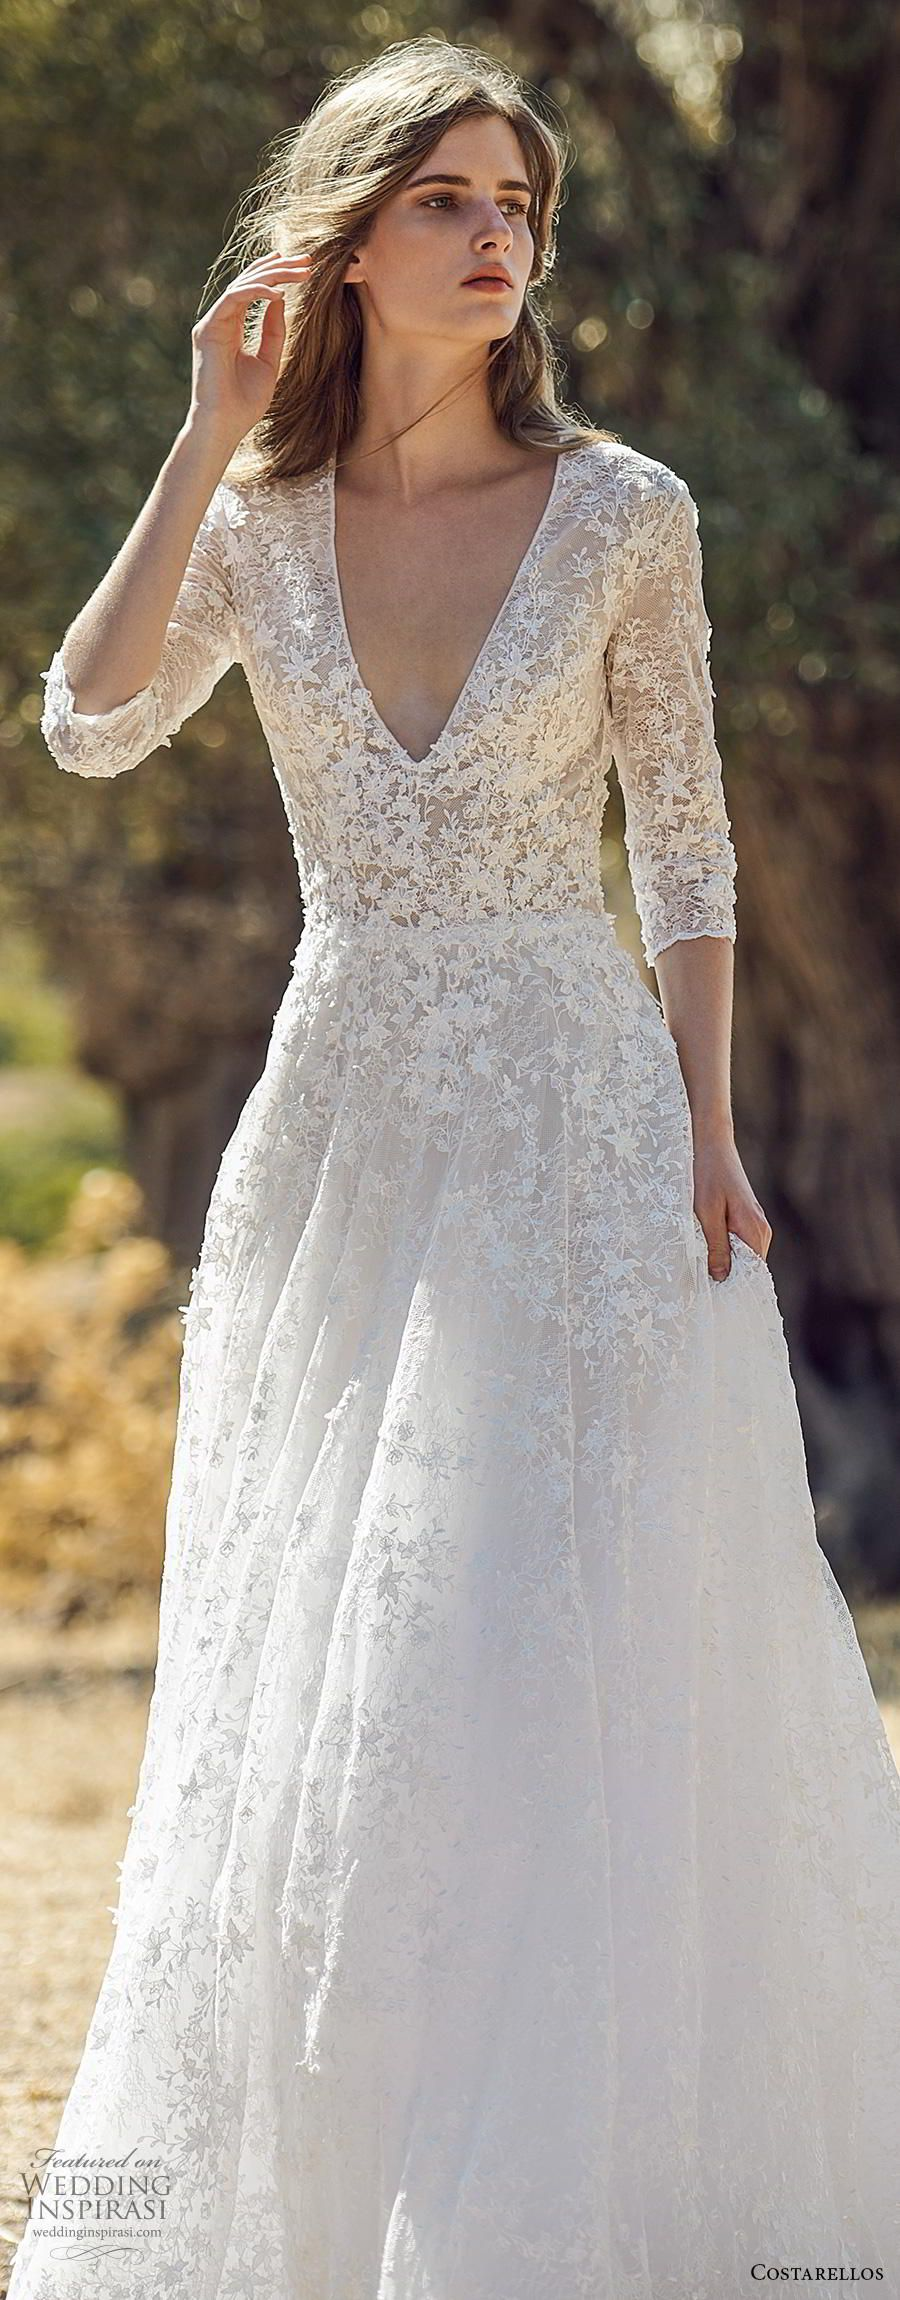 Costarellos Fall 2020 Wedding Dresses Wedding Inspirasi